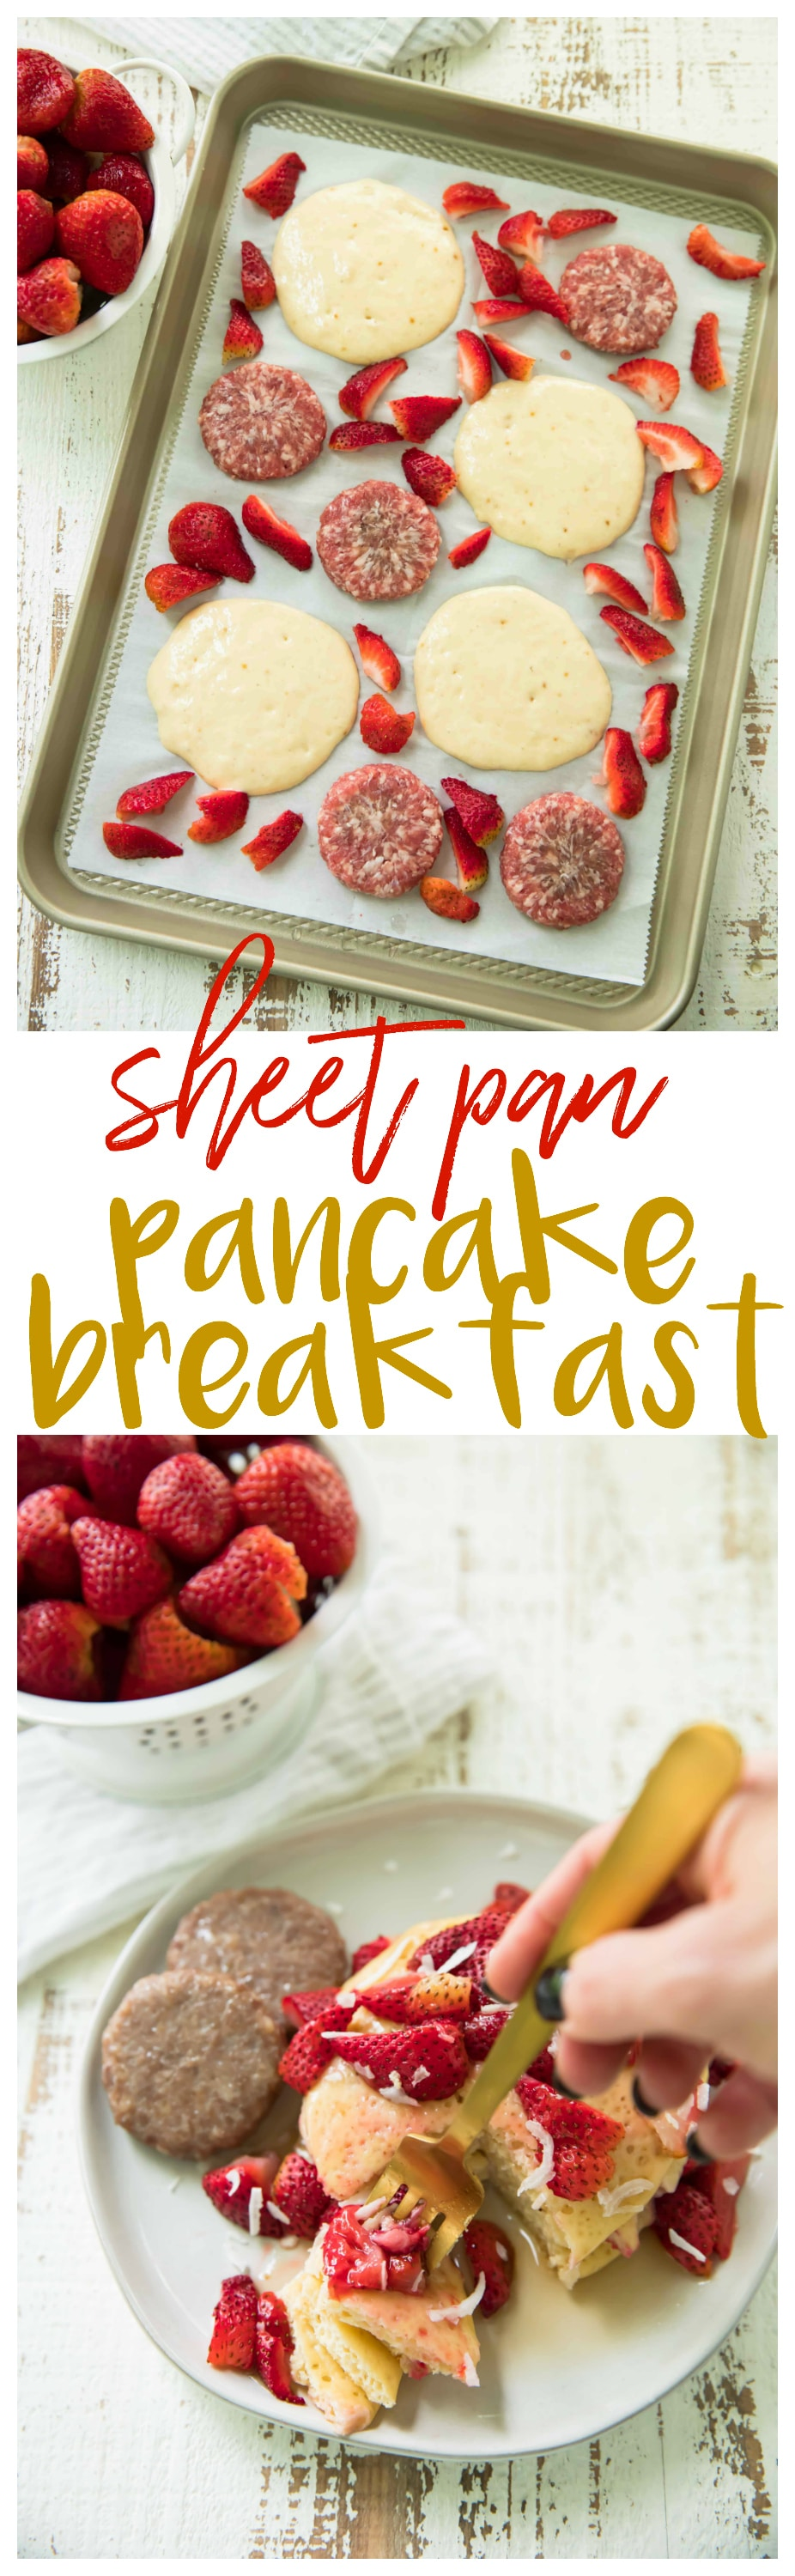 Sheet Pan Pancake Breakfast with Smithfield Hometown Original Fresh Breakfast Sausage and roasted strawberries is very easy to whip up and takes just 20 minutes to bake, giving you more time for morning cartoon snuggles!